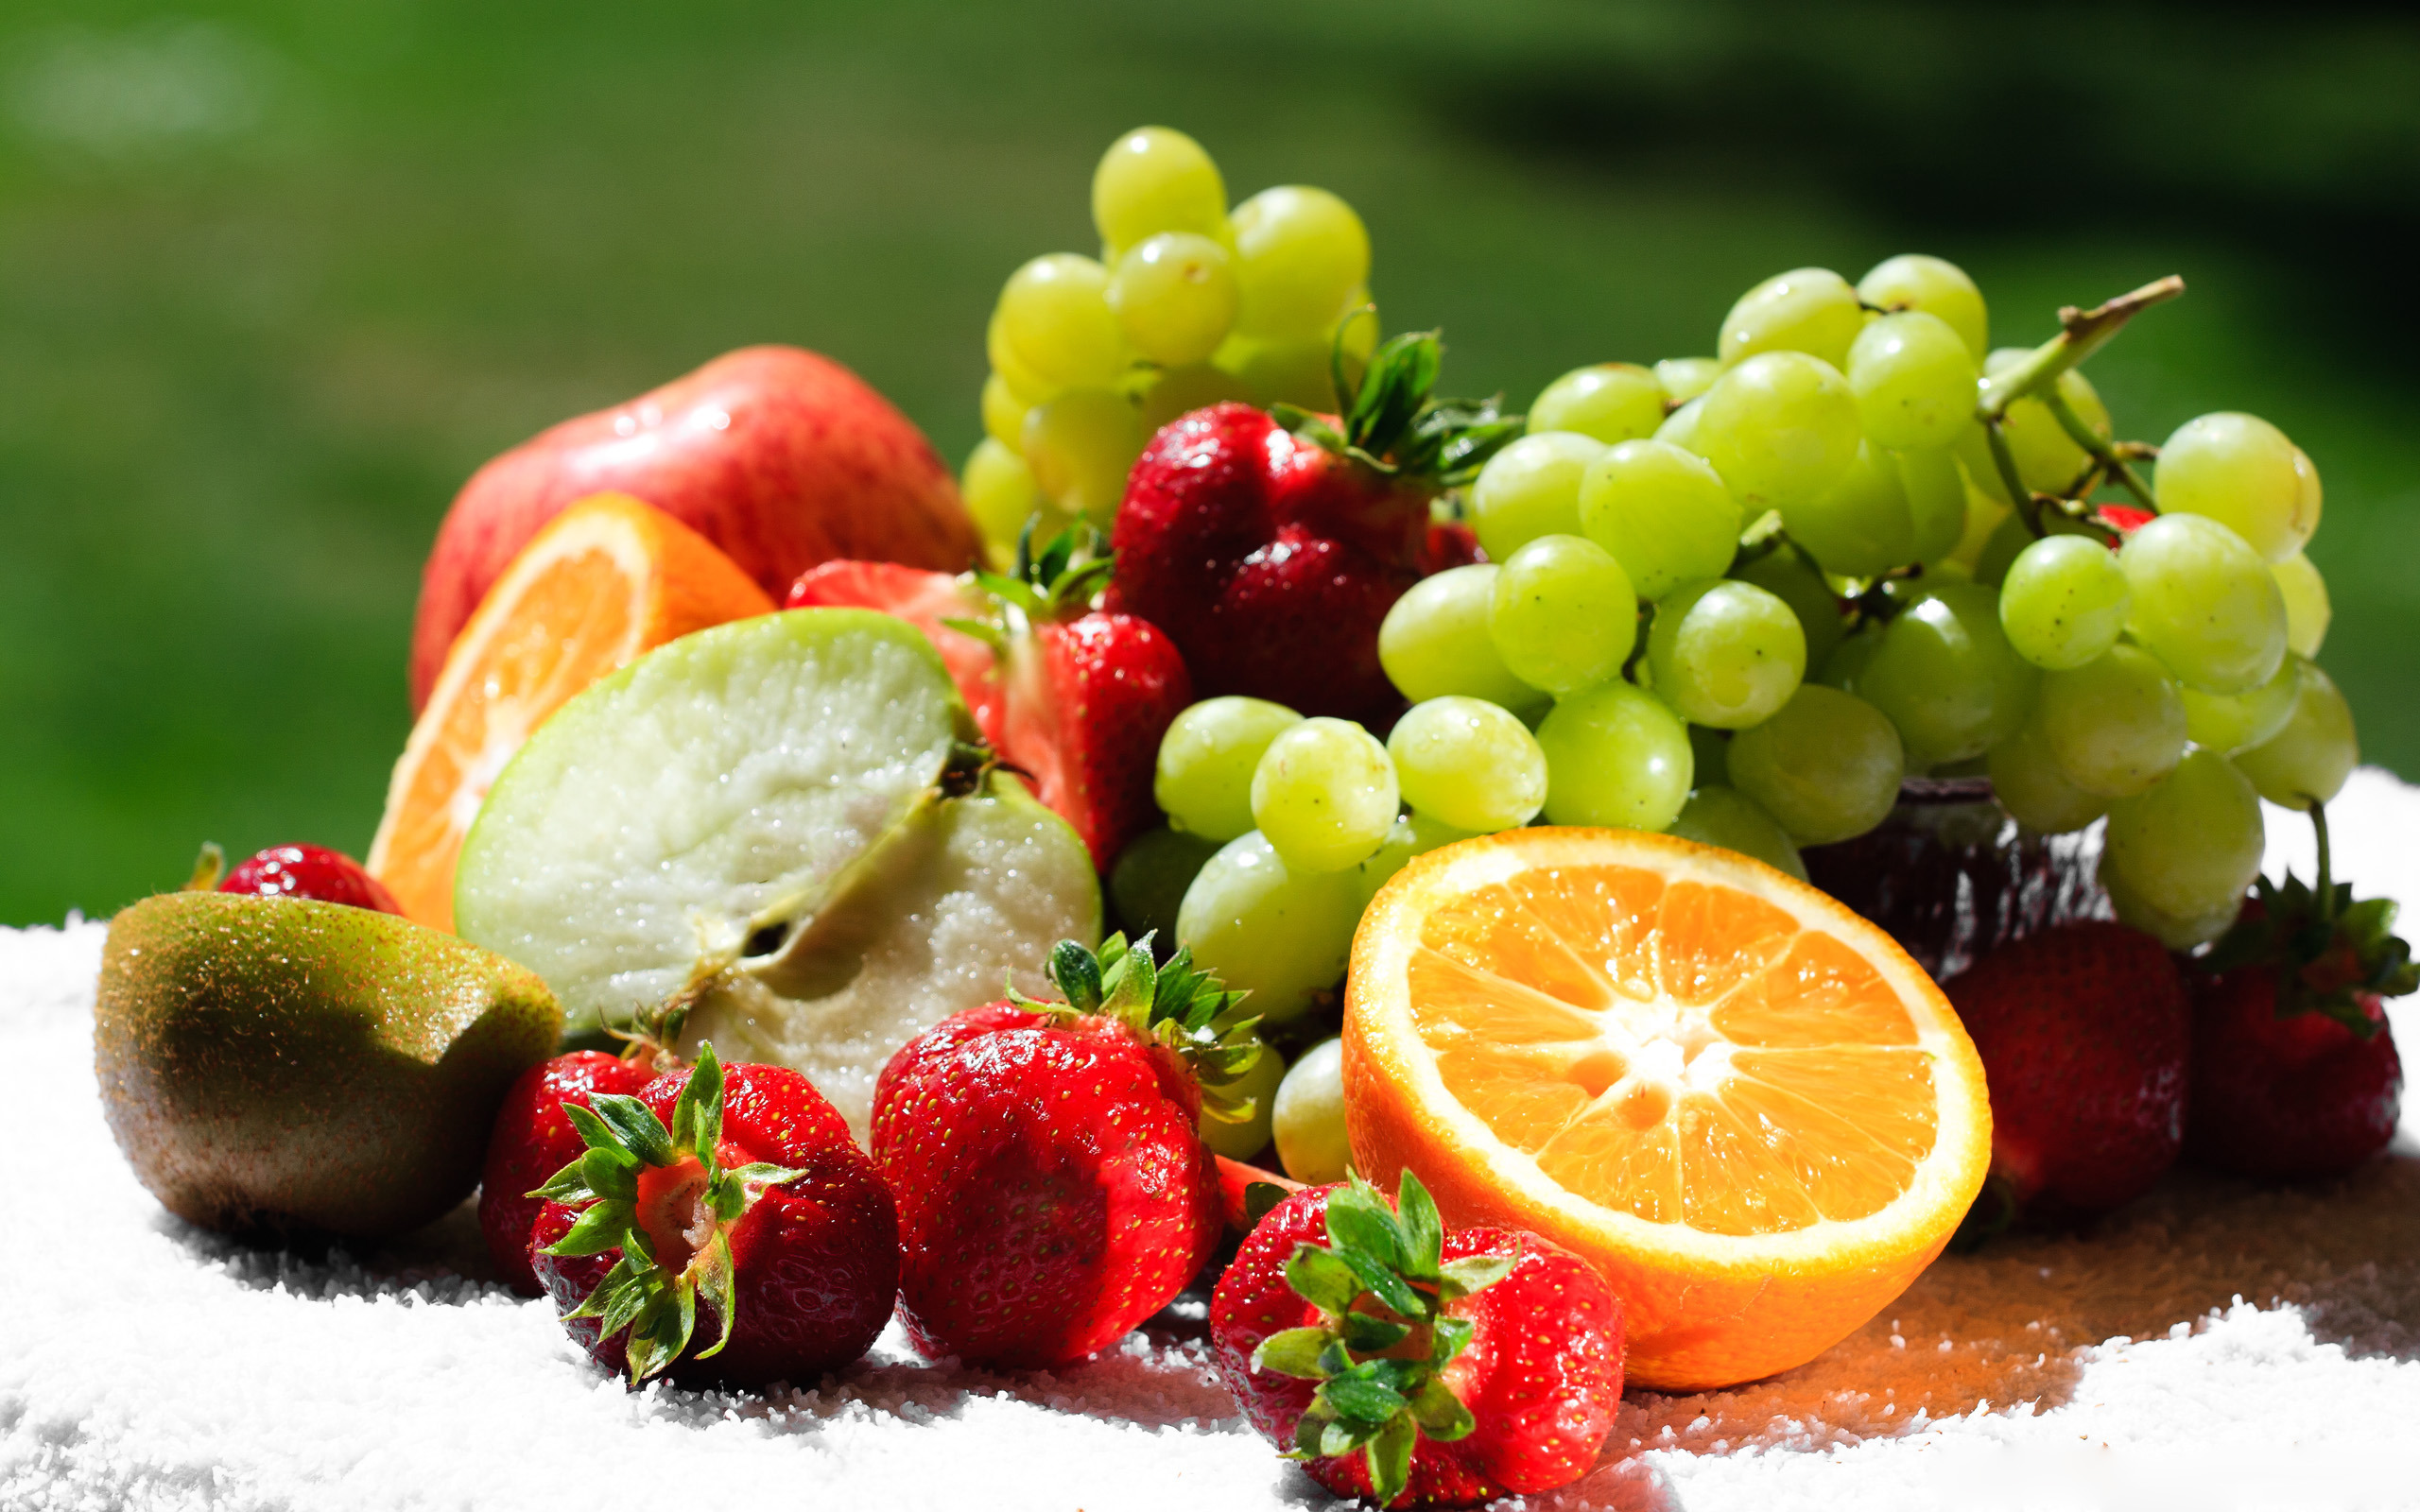 Healthy Food Image Is Cool Wallpapers